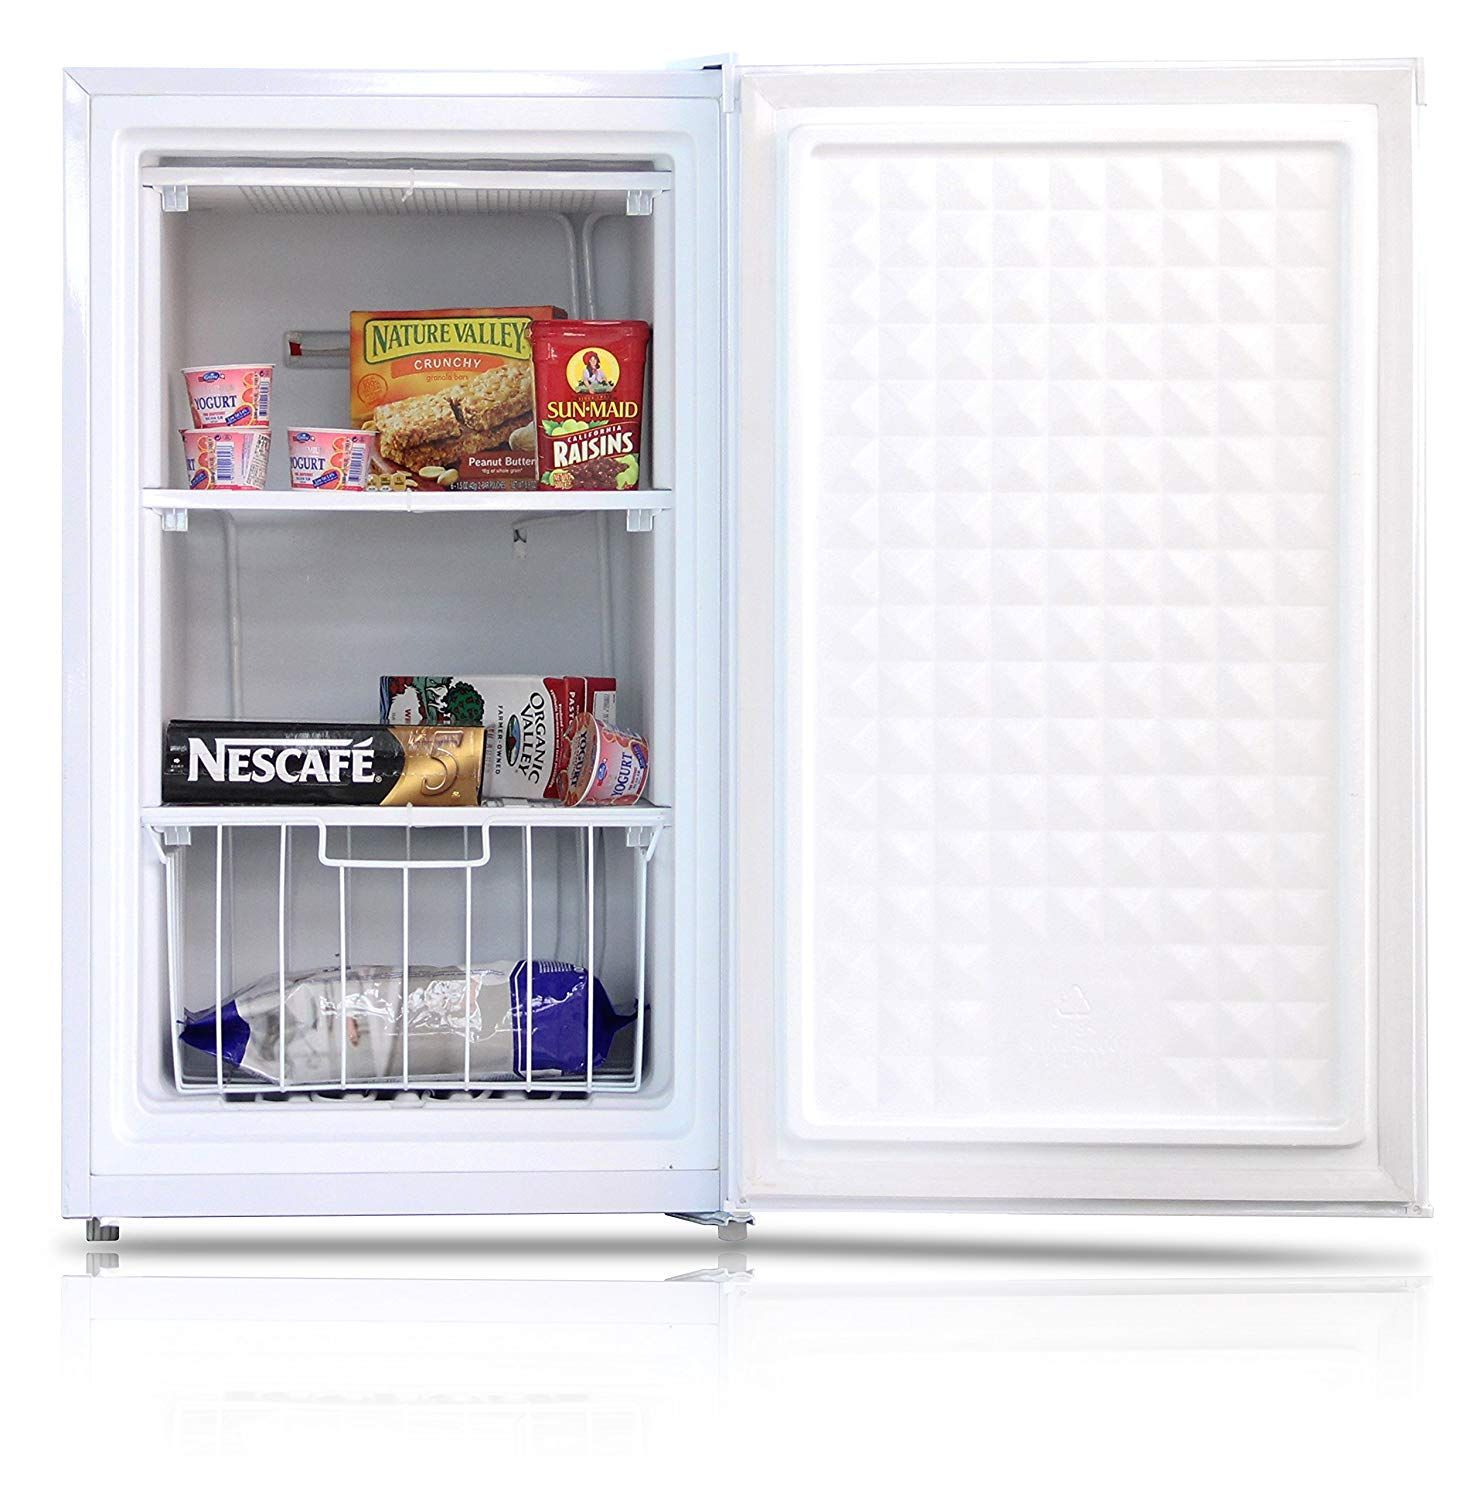 Top 5 Upright Freezers For Small Places Upright Freezer Chest Freezer Adjustable Legs